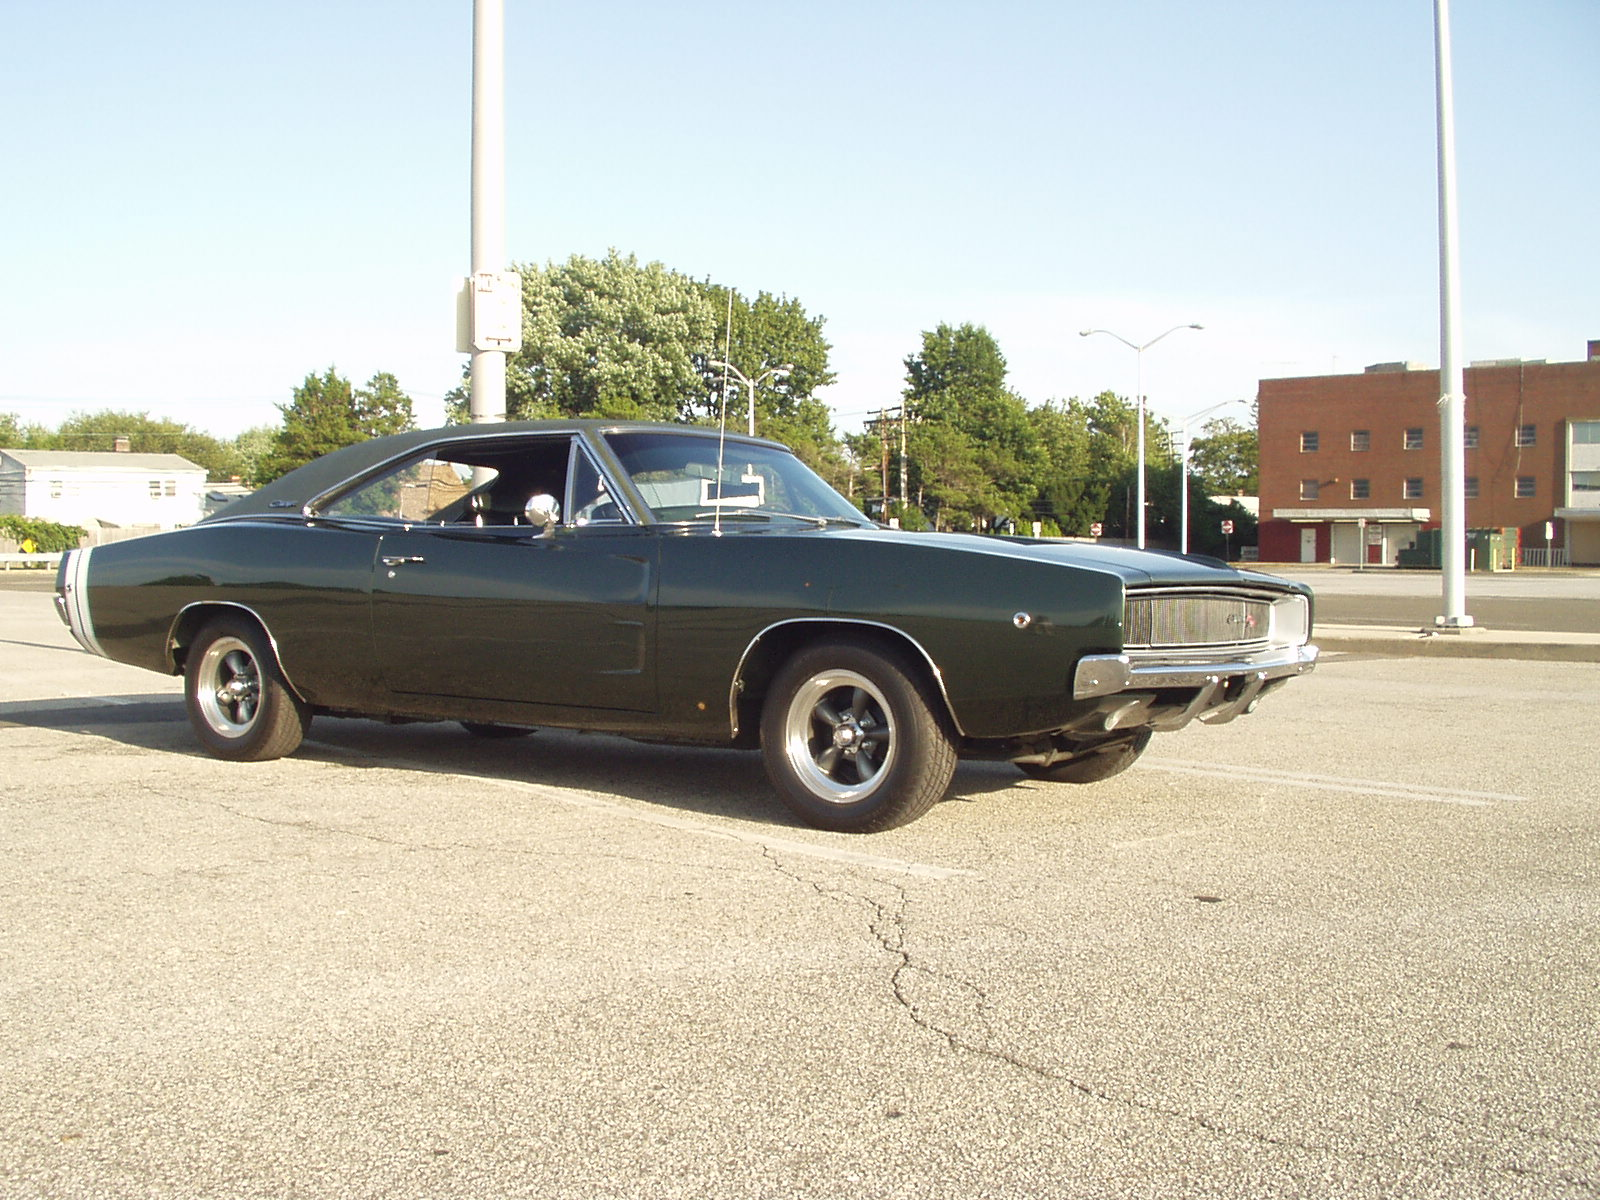 Ray C's 1968 Charger R/T